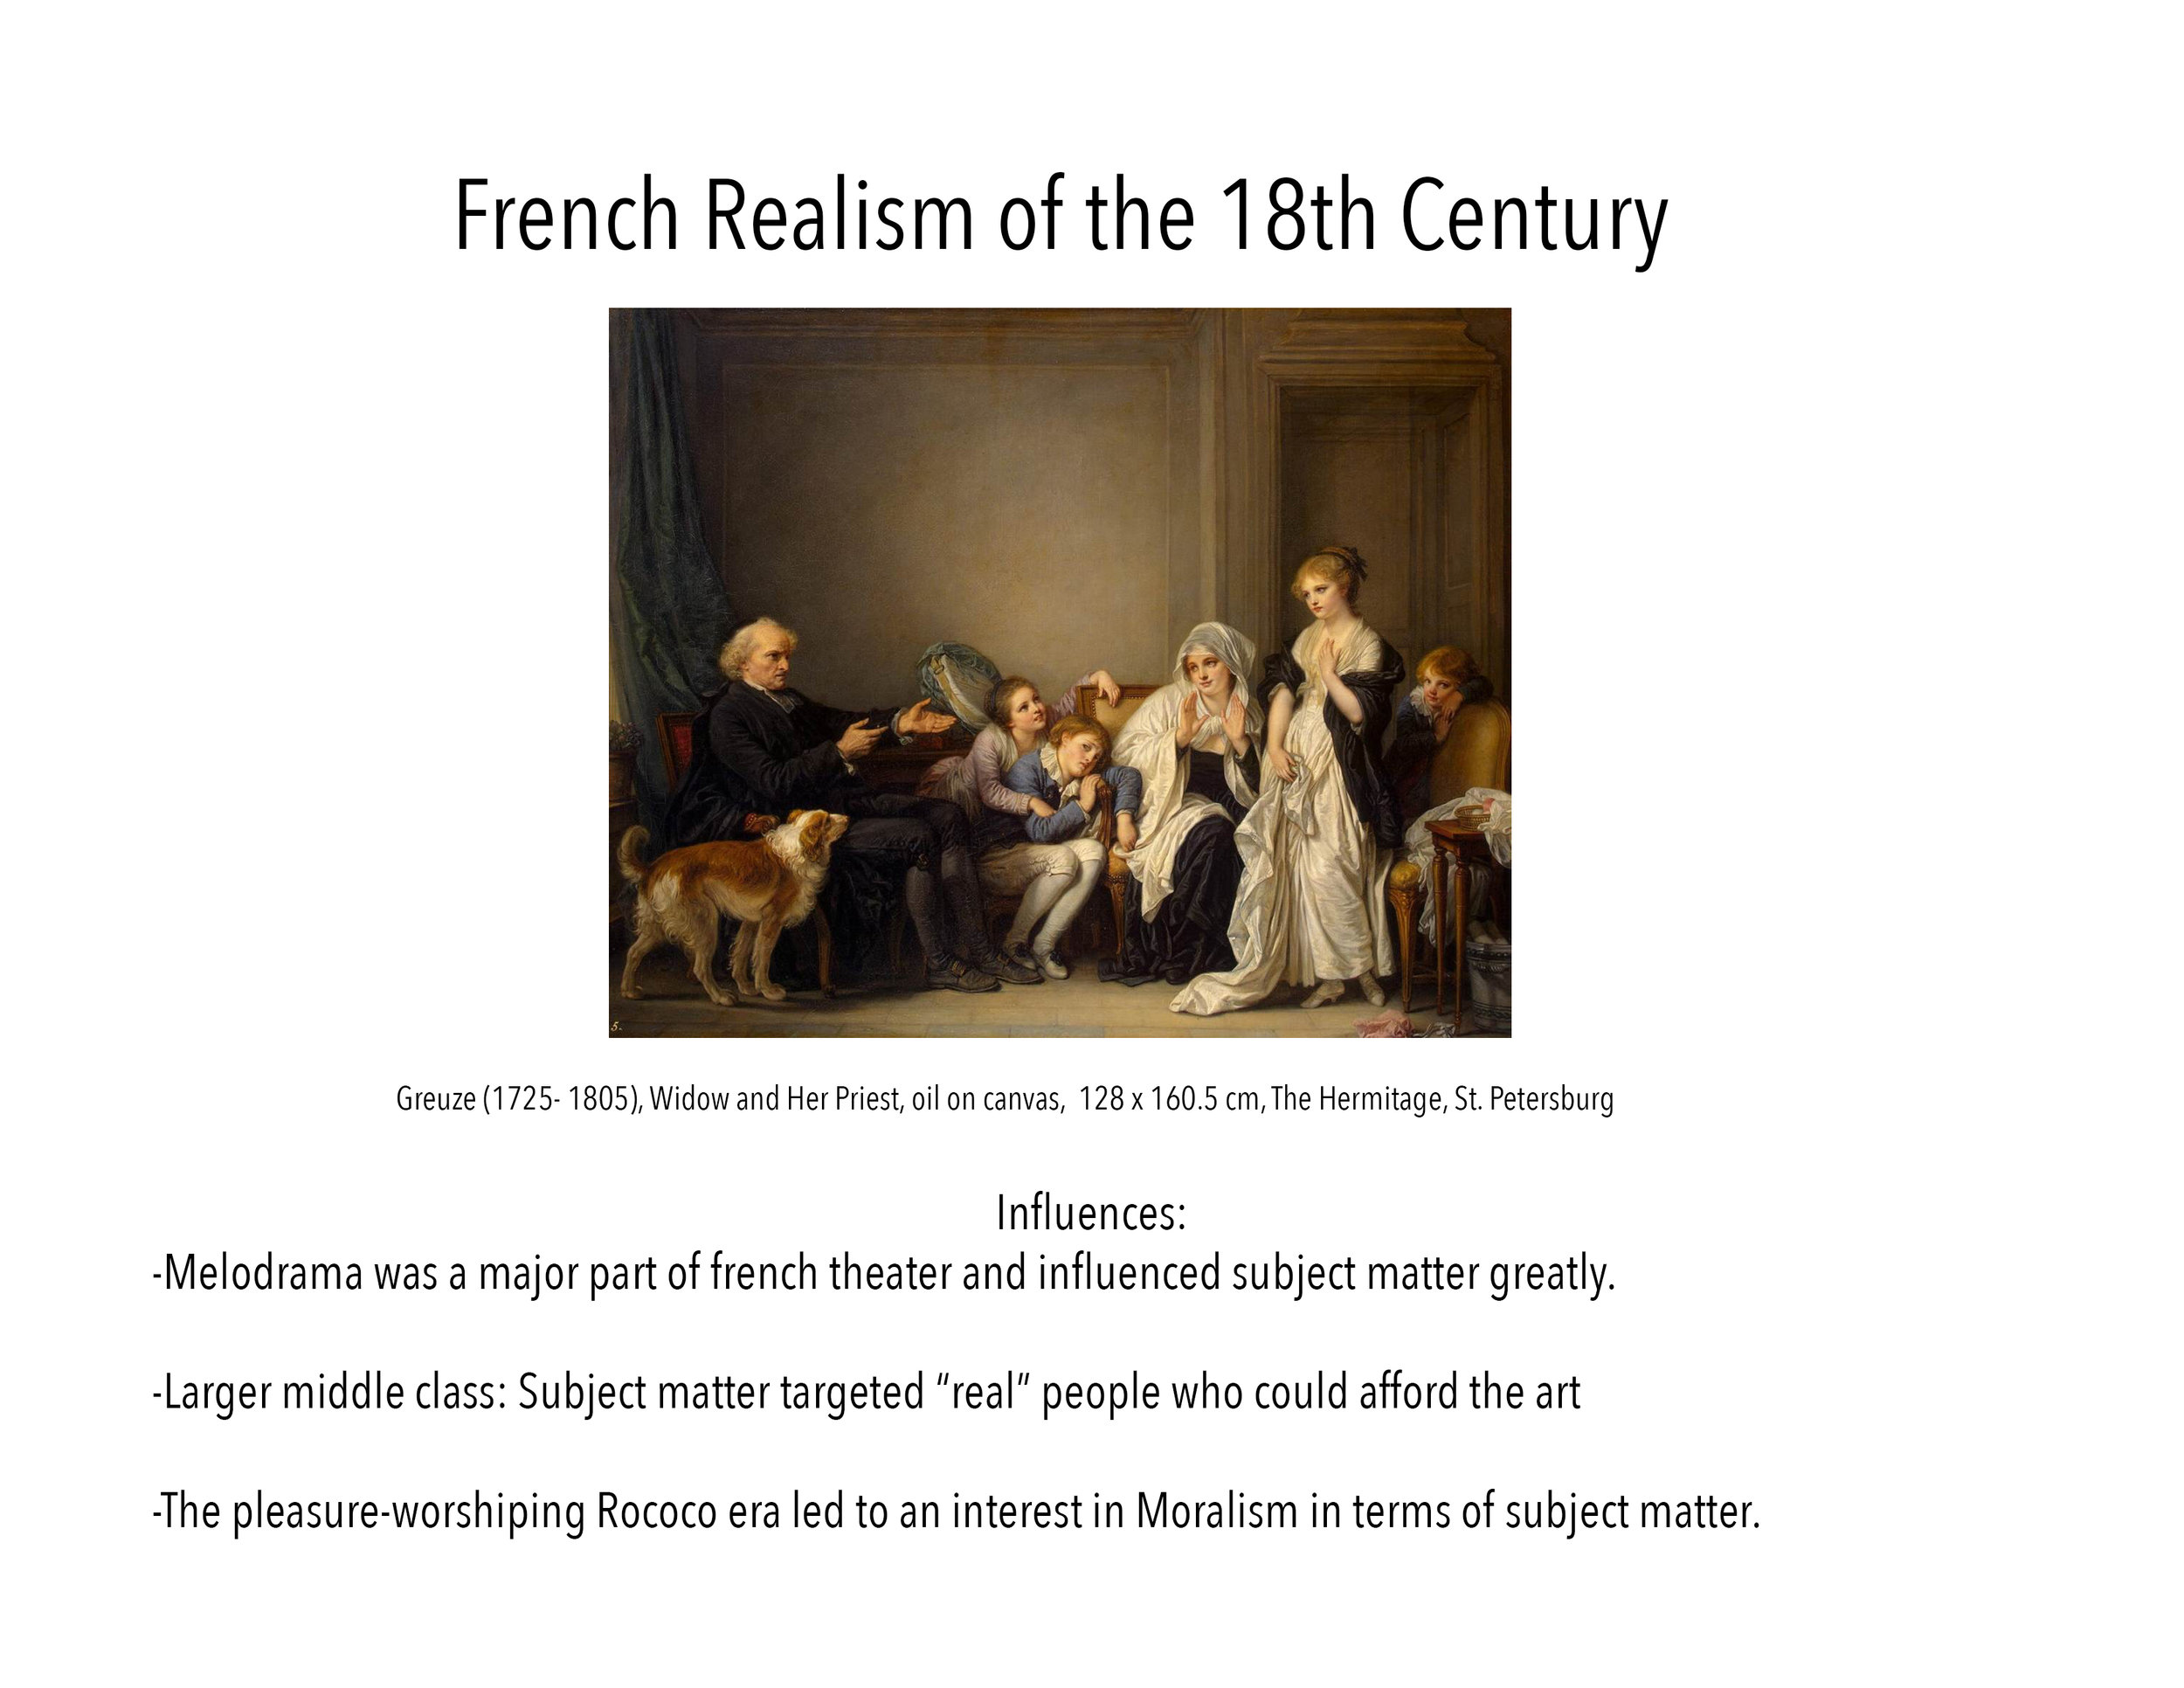 French Realism of the 18th Century.jpg